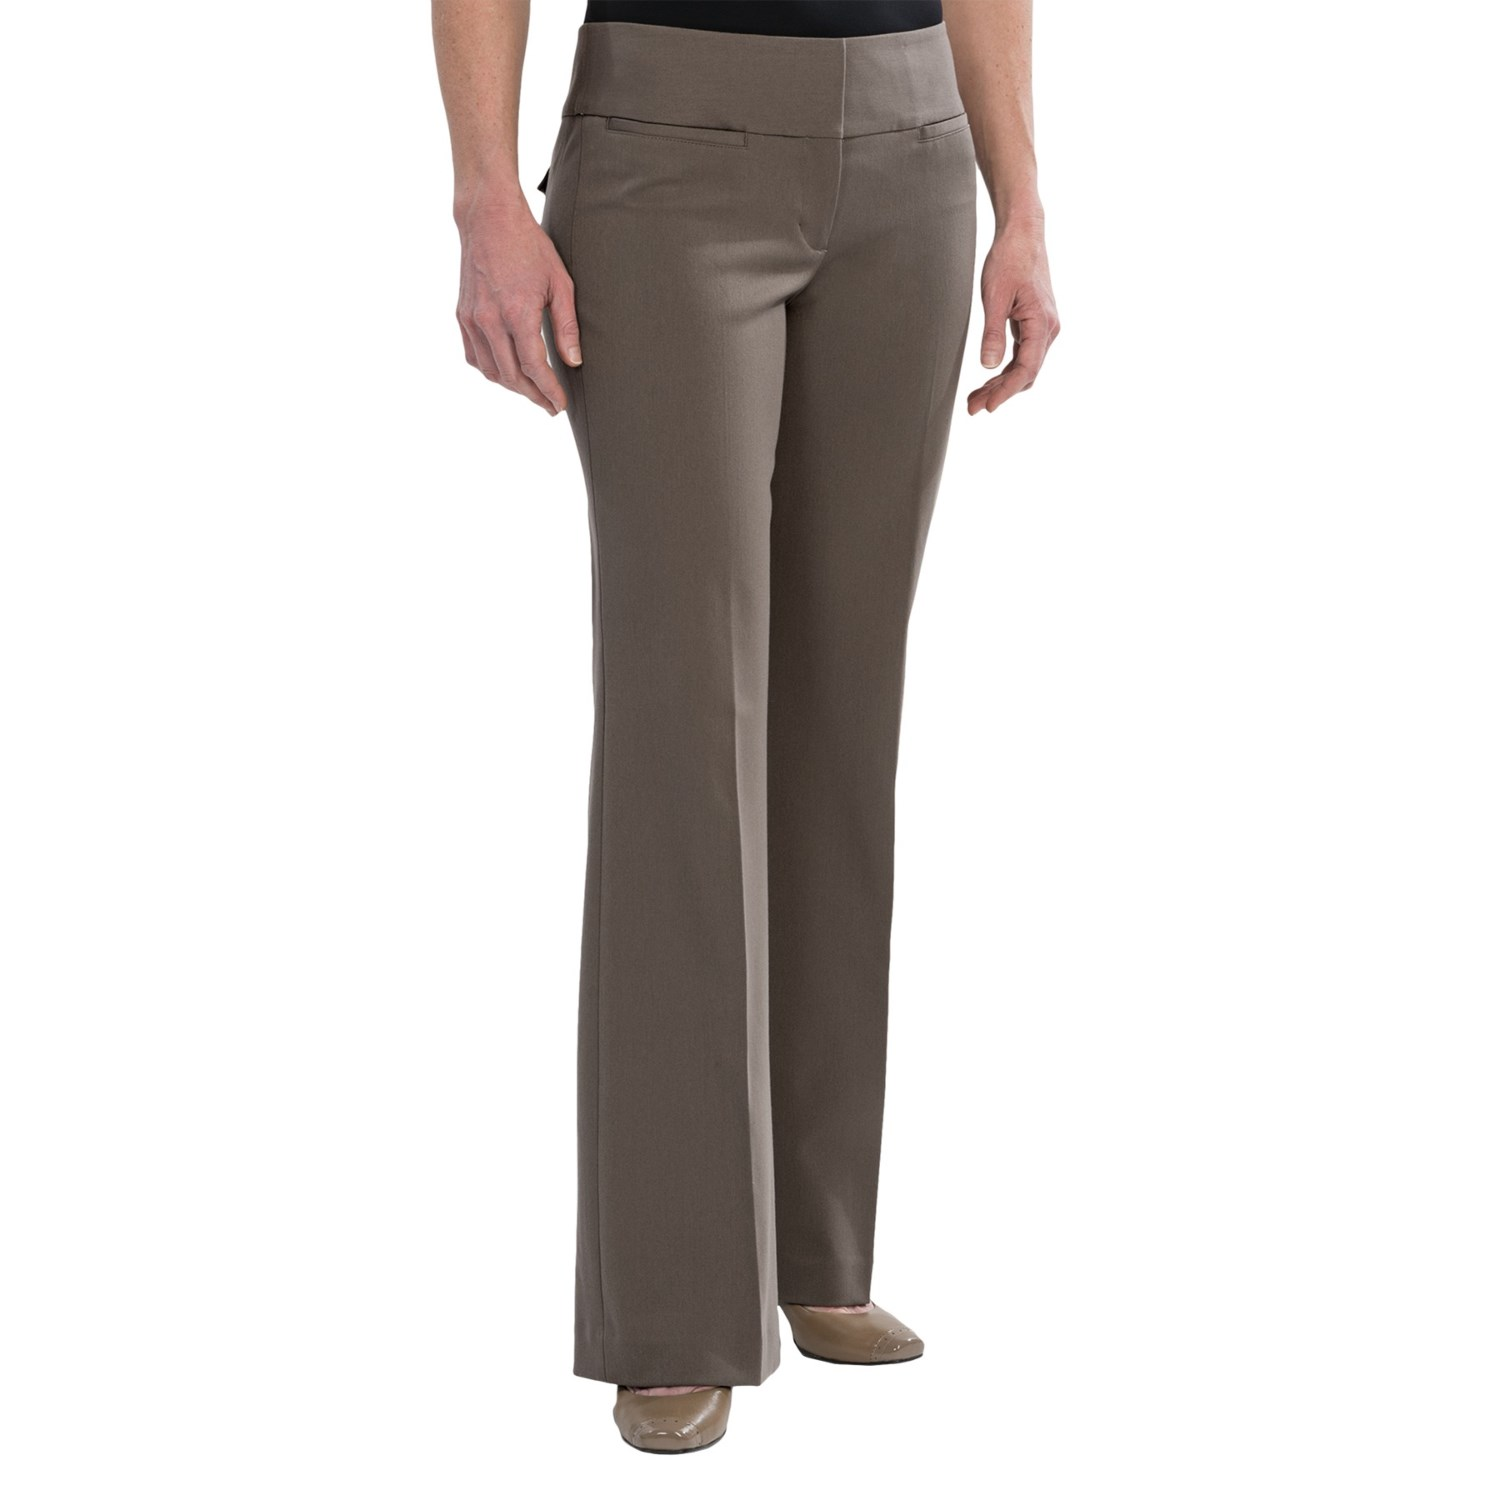 Dressing Pants For Women - Pant Row